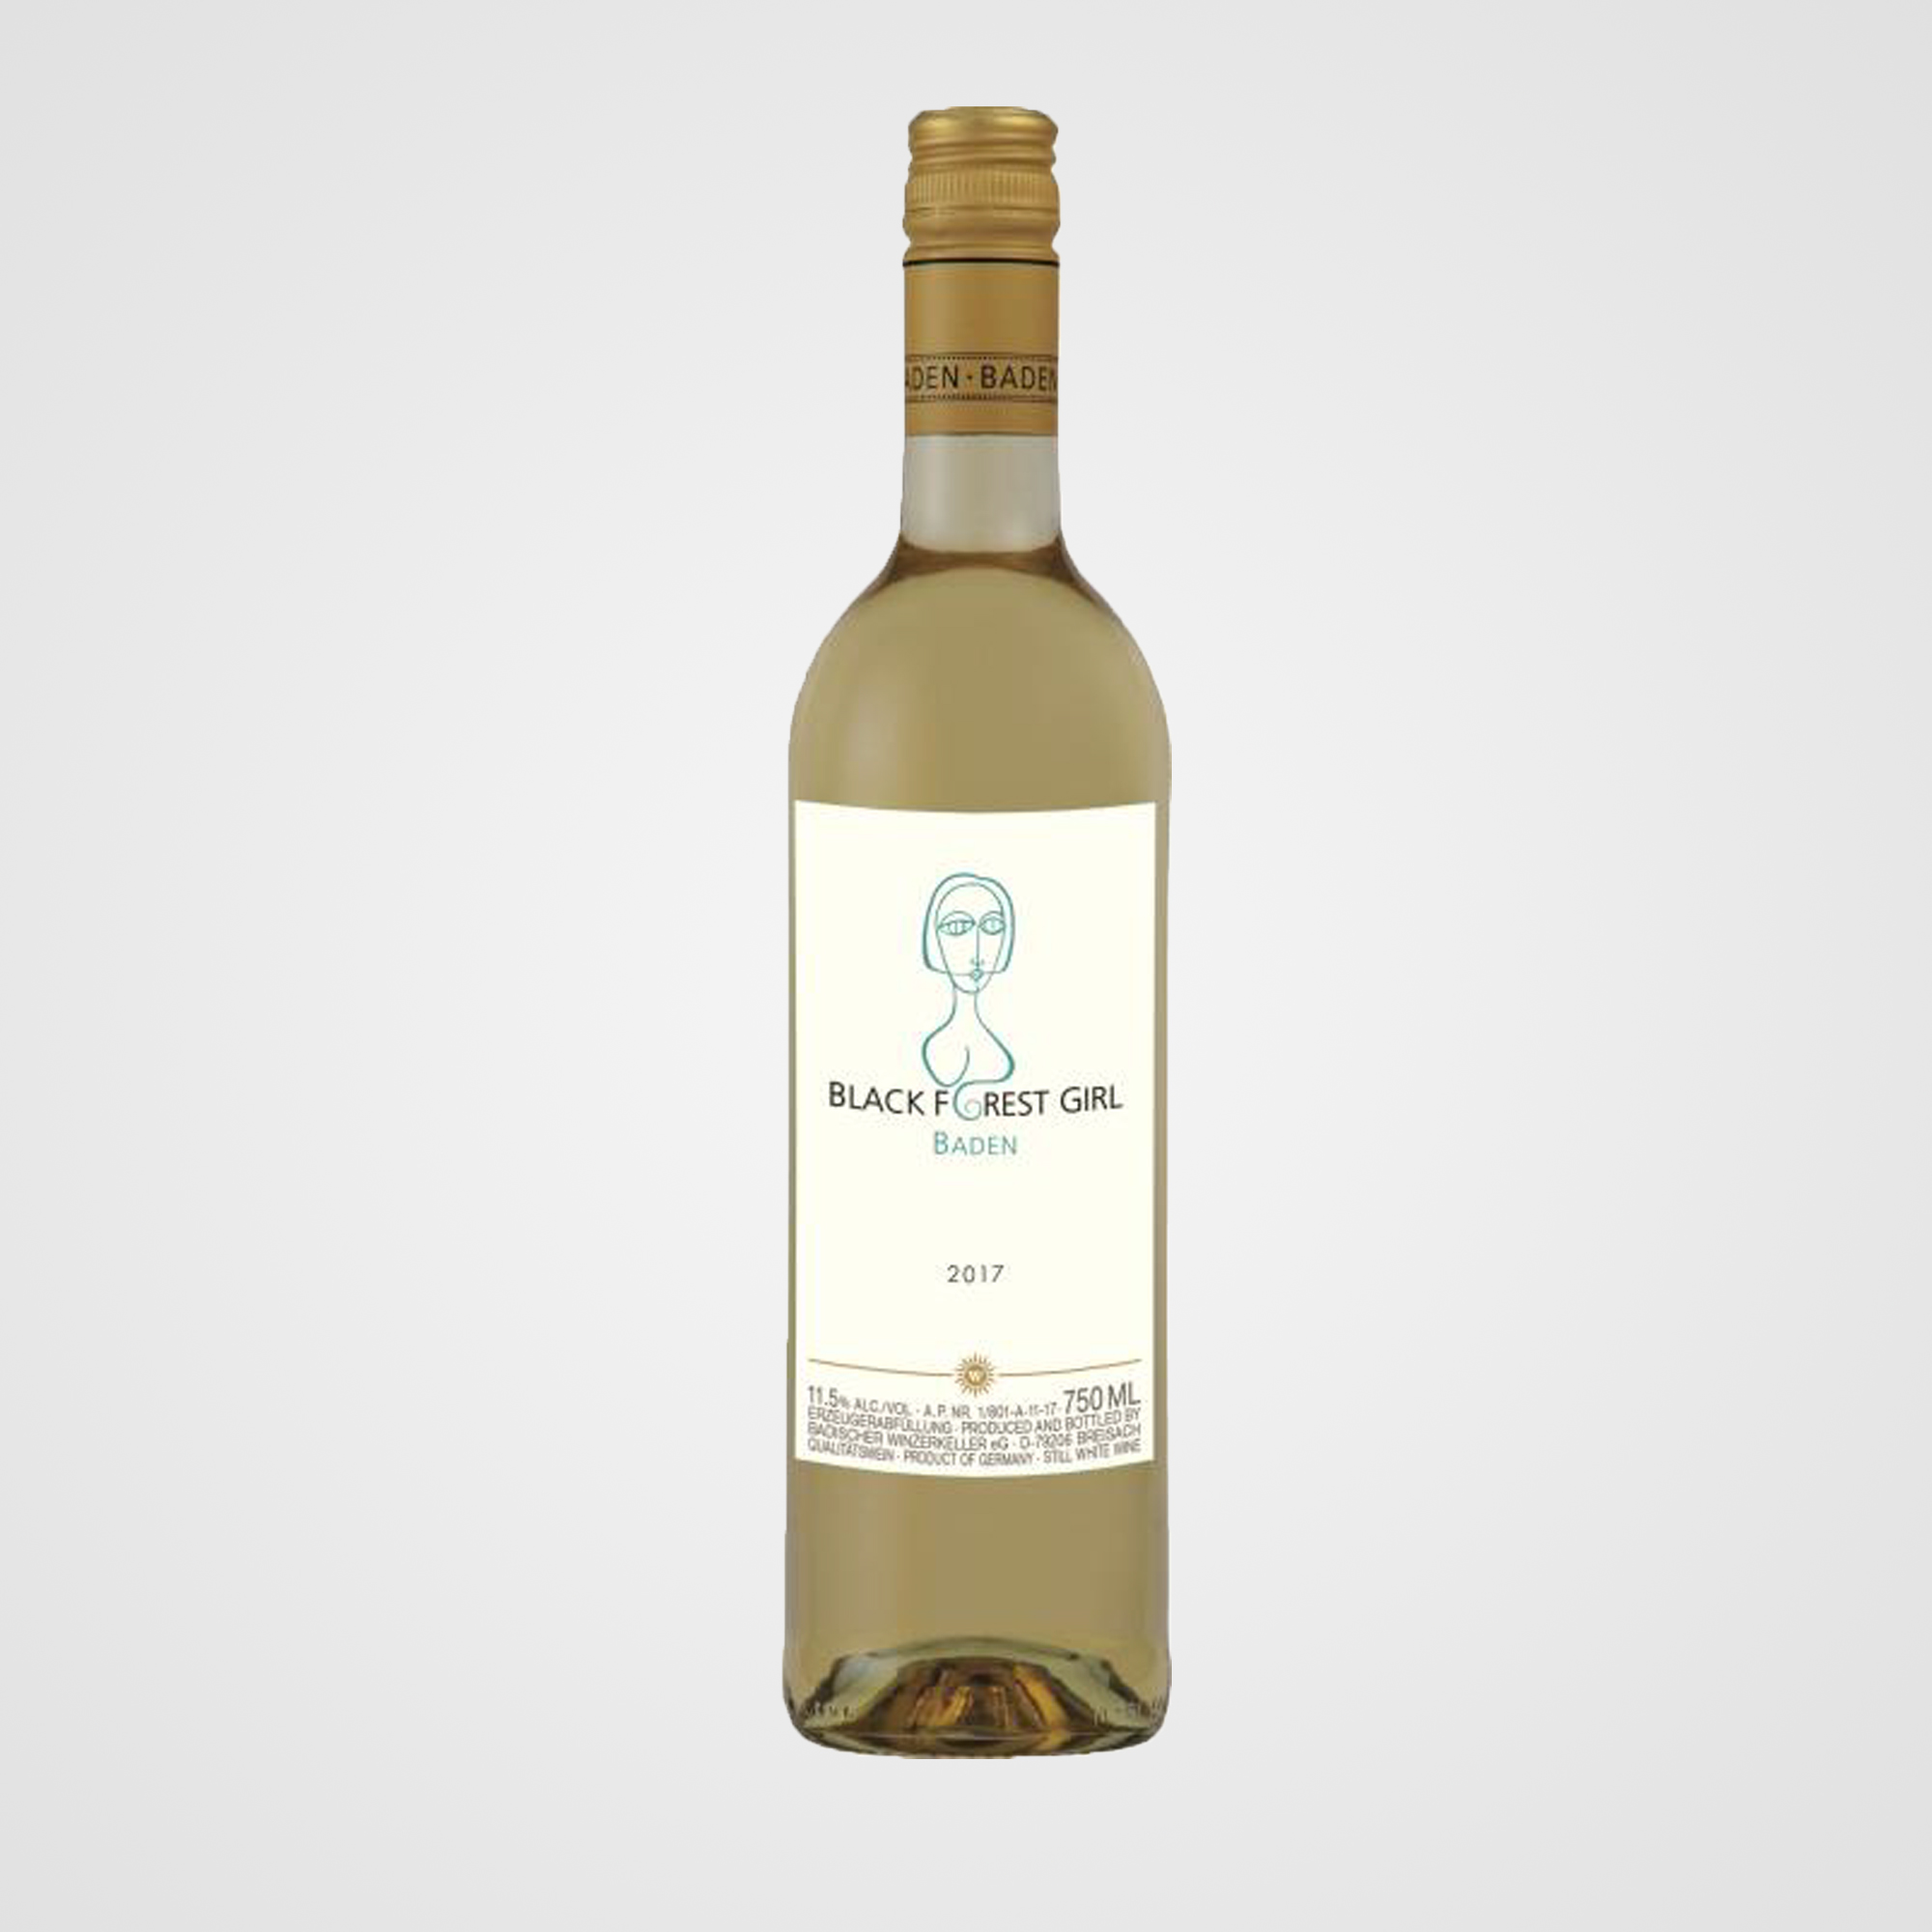 Cuvée Blanc - A masterful cuvée with great balance and a fresh finish, ideal with brunch, seafood, poultry and as an aperitif, to be served chilled.11.5% abv./ sugar 11g / acidity 5.7g